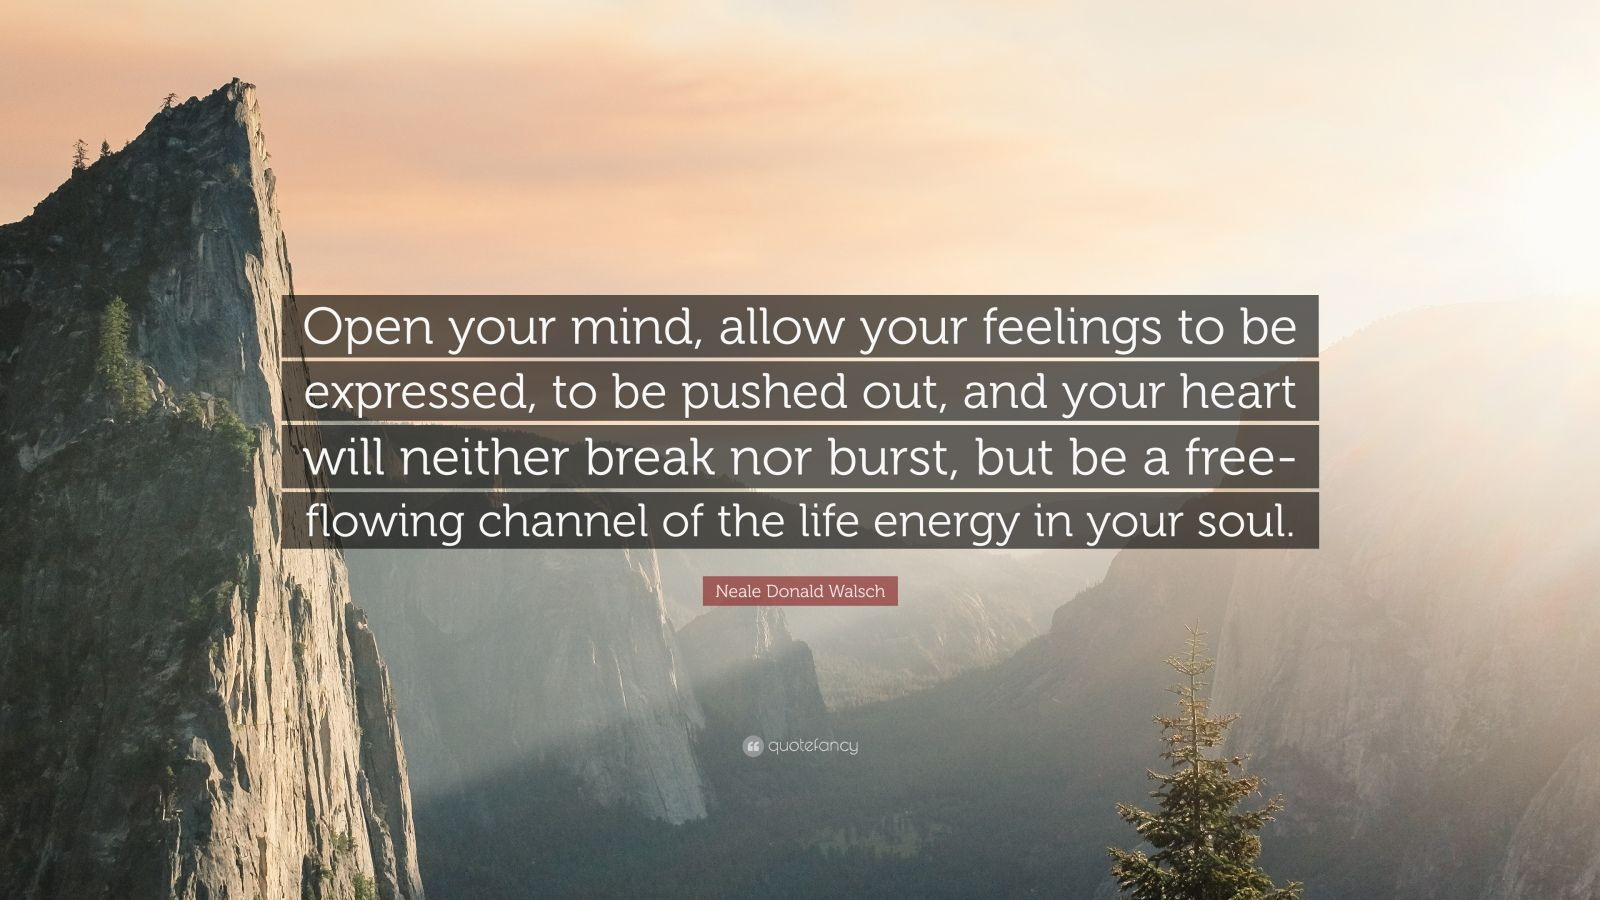 """Neale Donald Walsch Quote: """"Open your mind, allow your feelings to be expressed, to be pushed out, and your heart will neither break nor burst, but be a free-flowing channel of the life energy in your soul."""""""